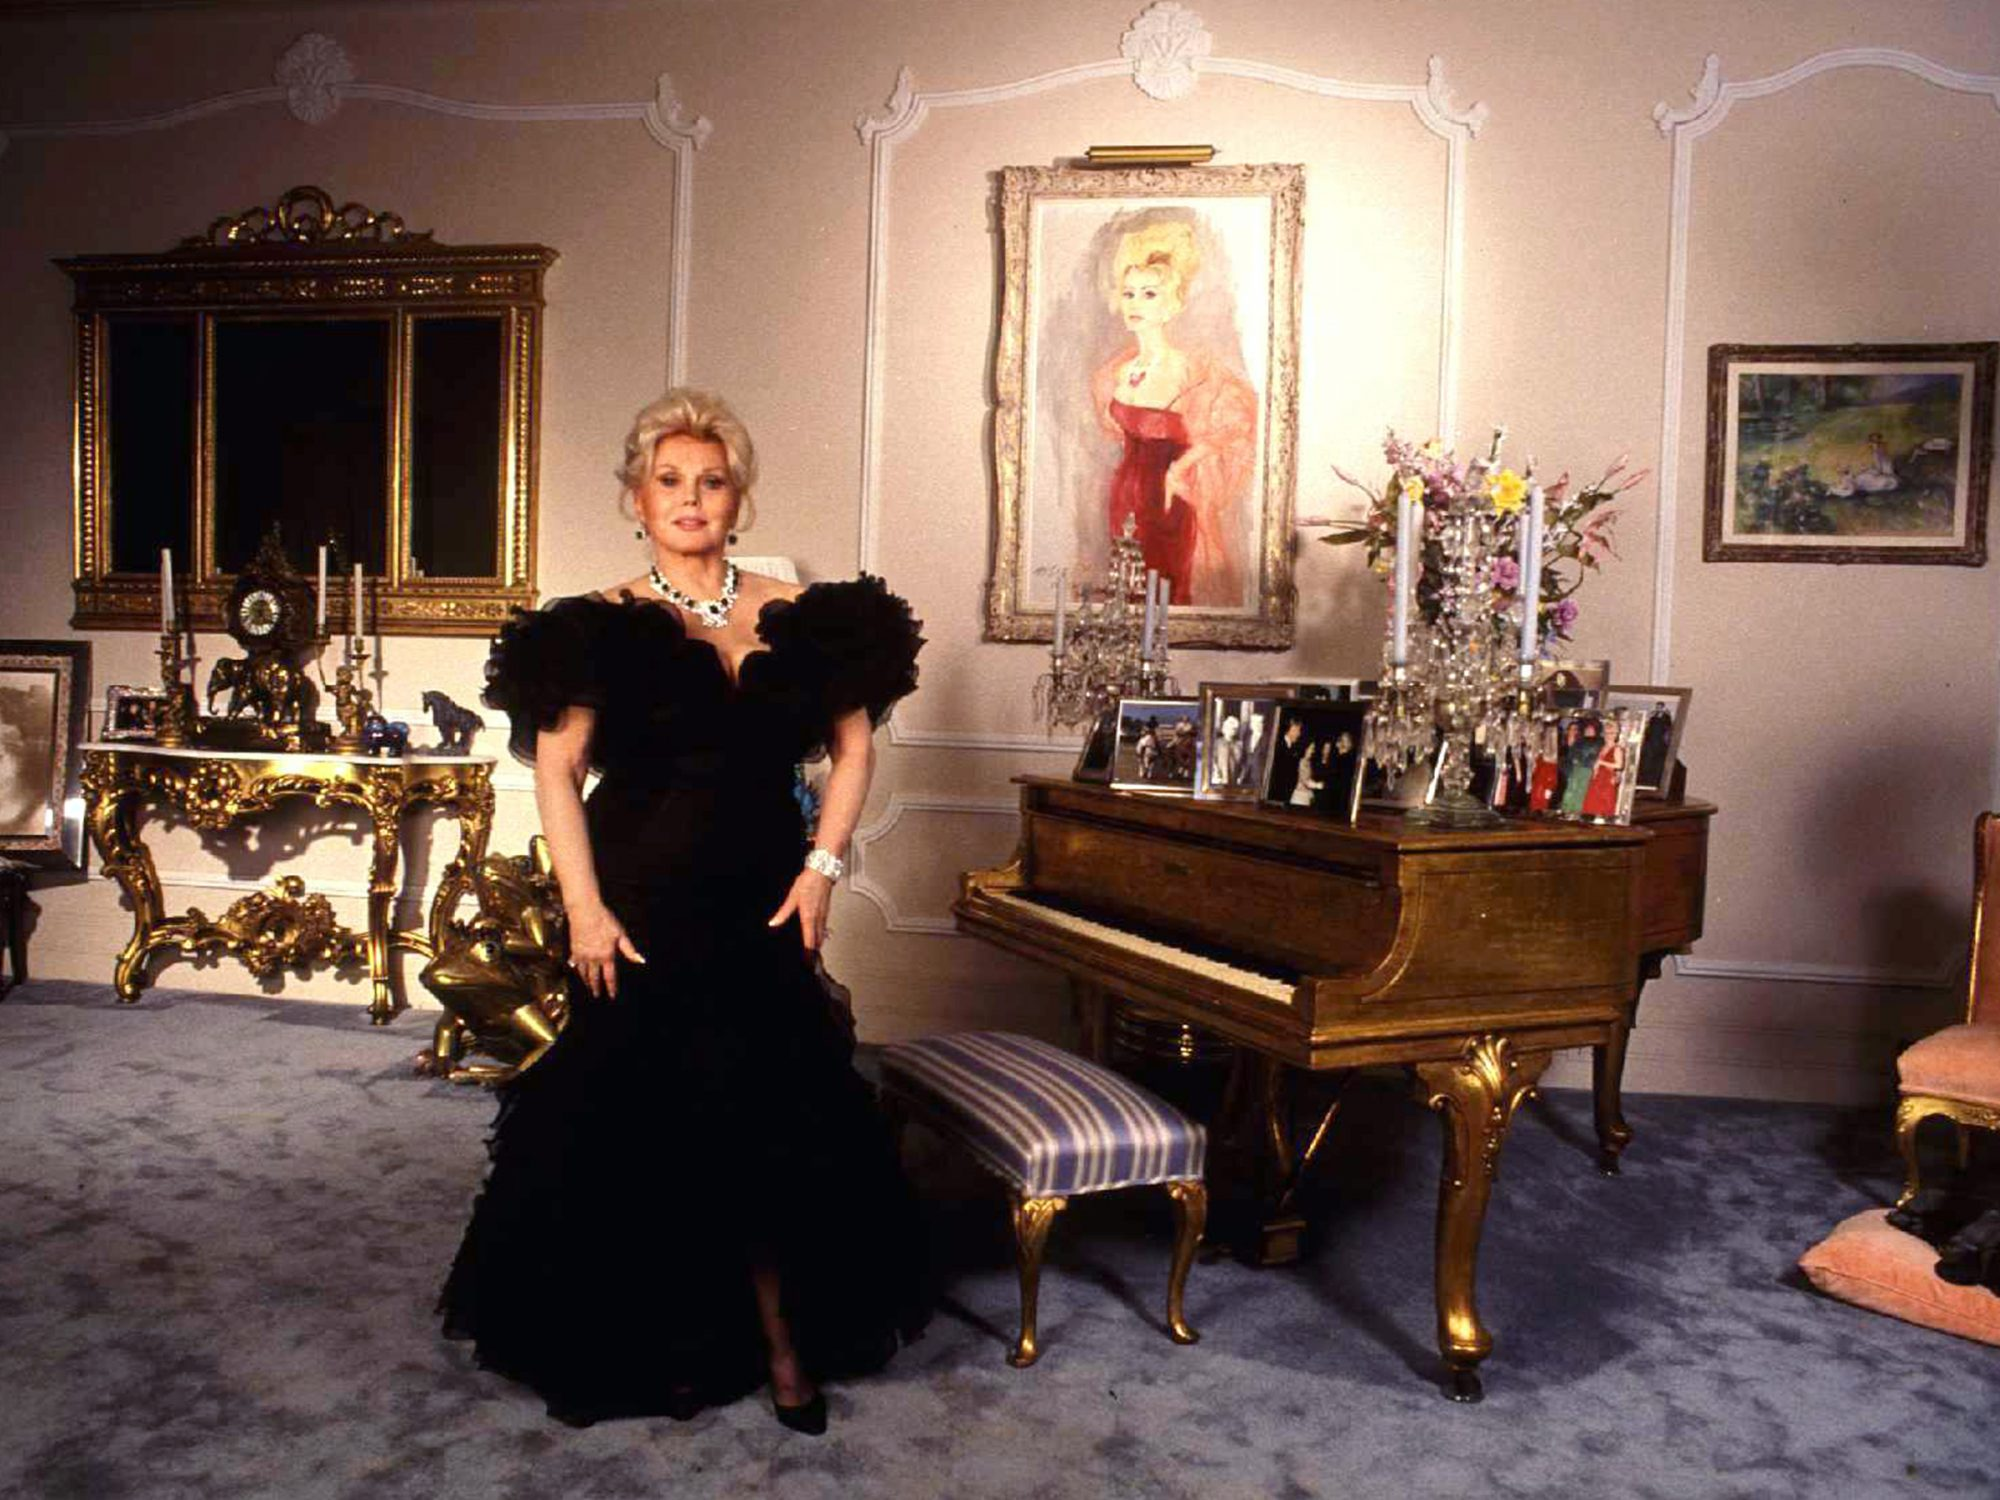 Bel Air Zsa Zsa Gabor Stands In One Of Her Rooms In Her Bel Air Mansion Paul Harris